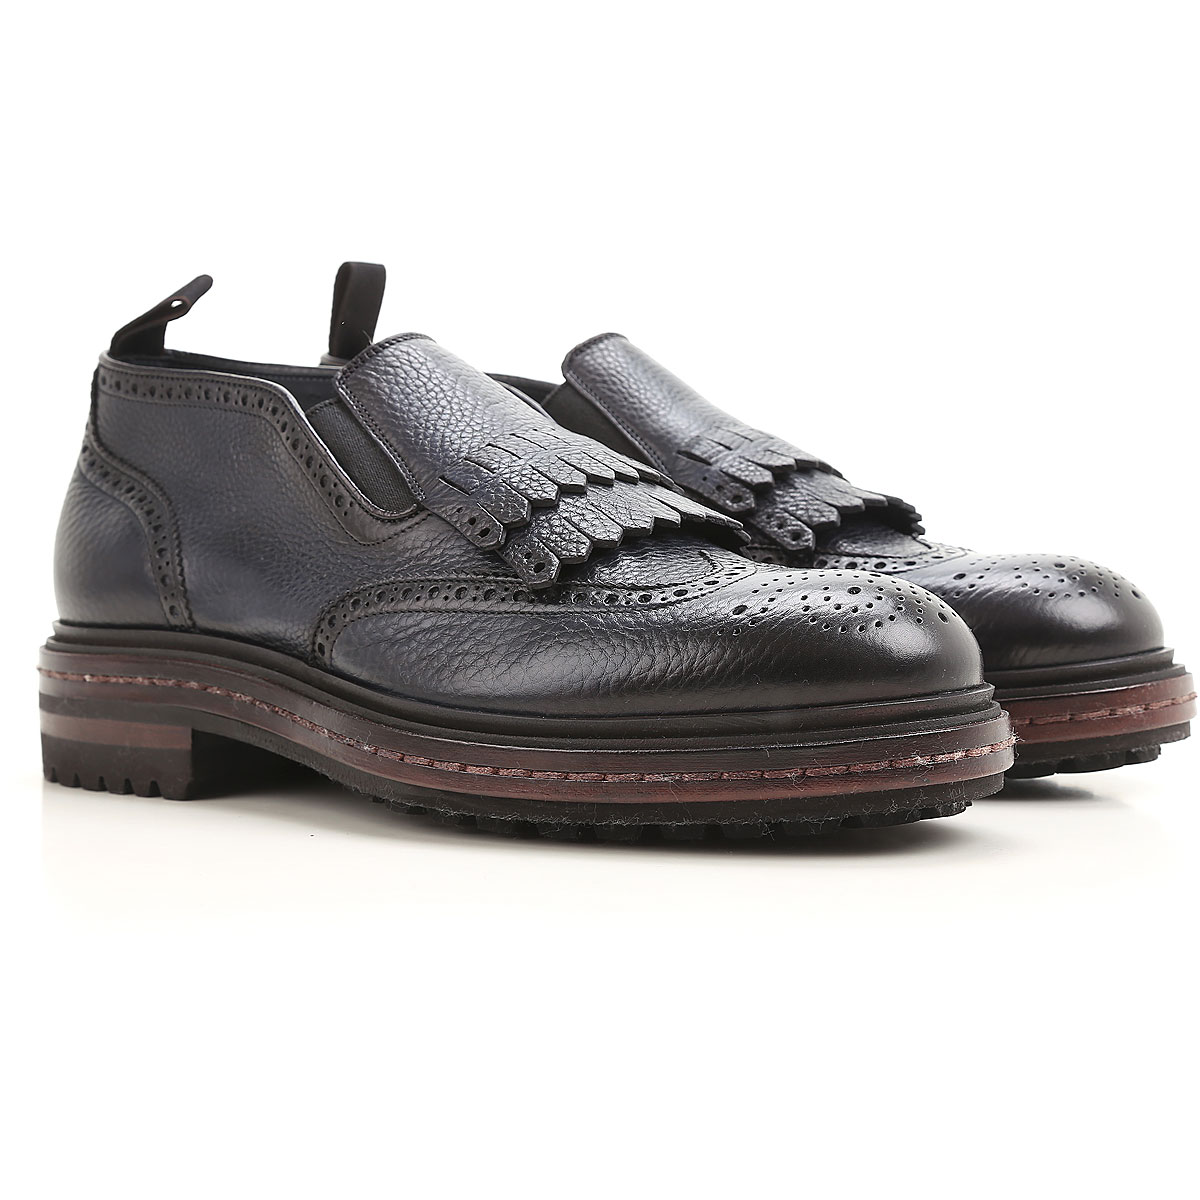 Image of Santoni Driver Loafer Shoes for Men, Shaded Dark Night blue, Leather, 2017, 10 11 11.5 6 8.5